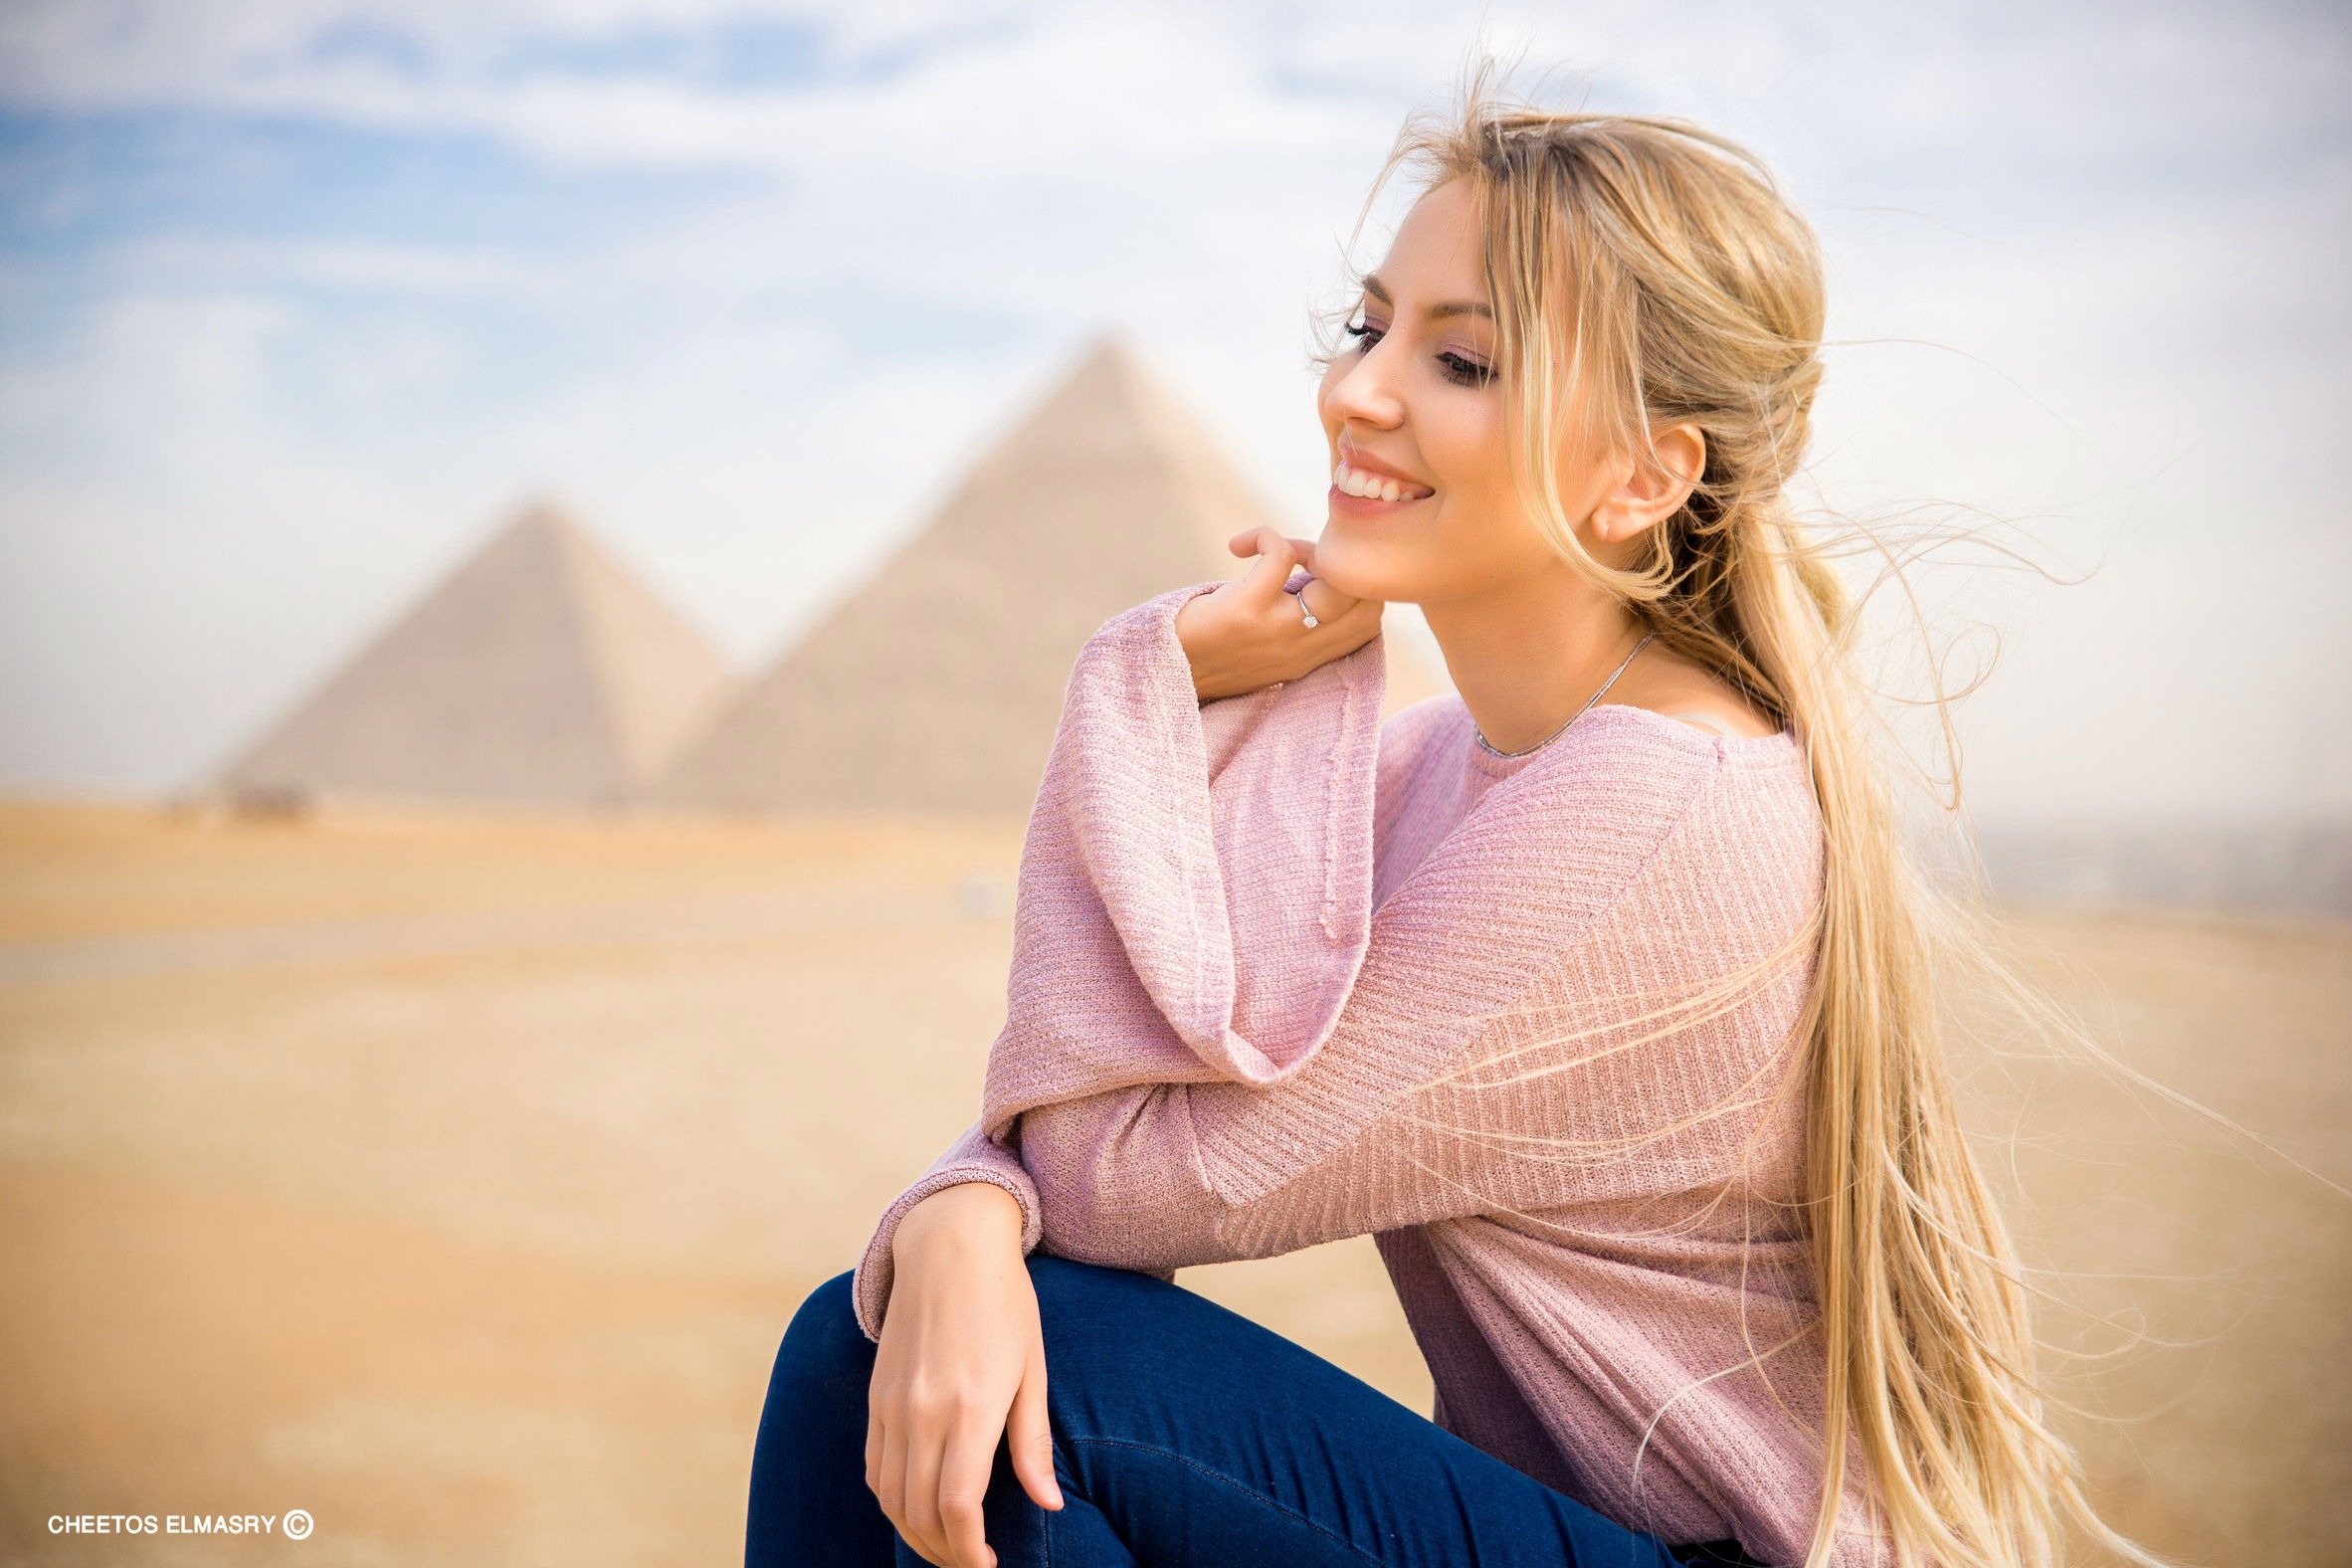 How to get a girlfriend in egypt